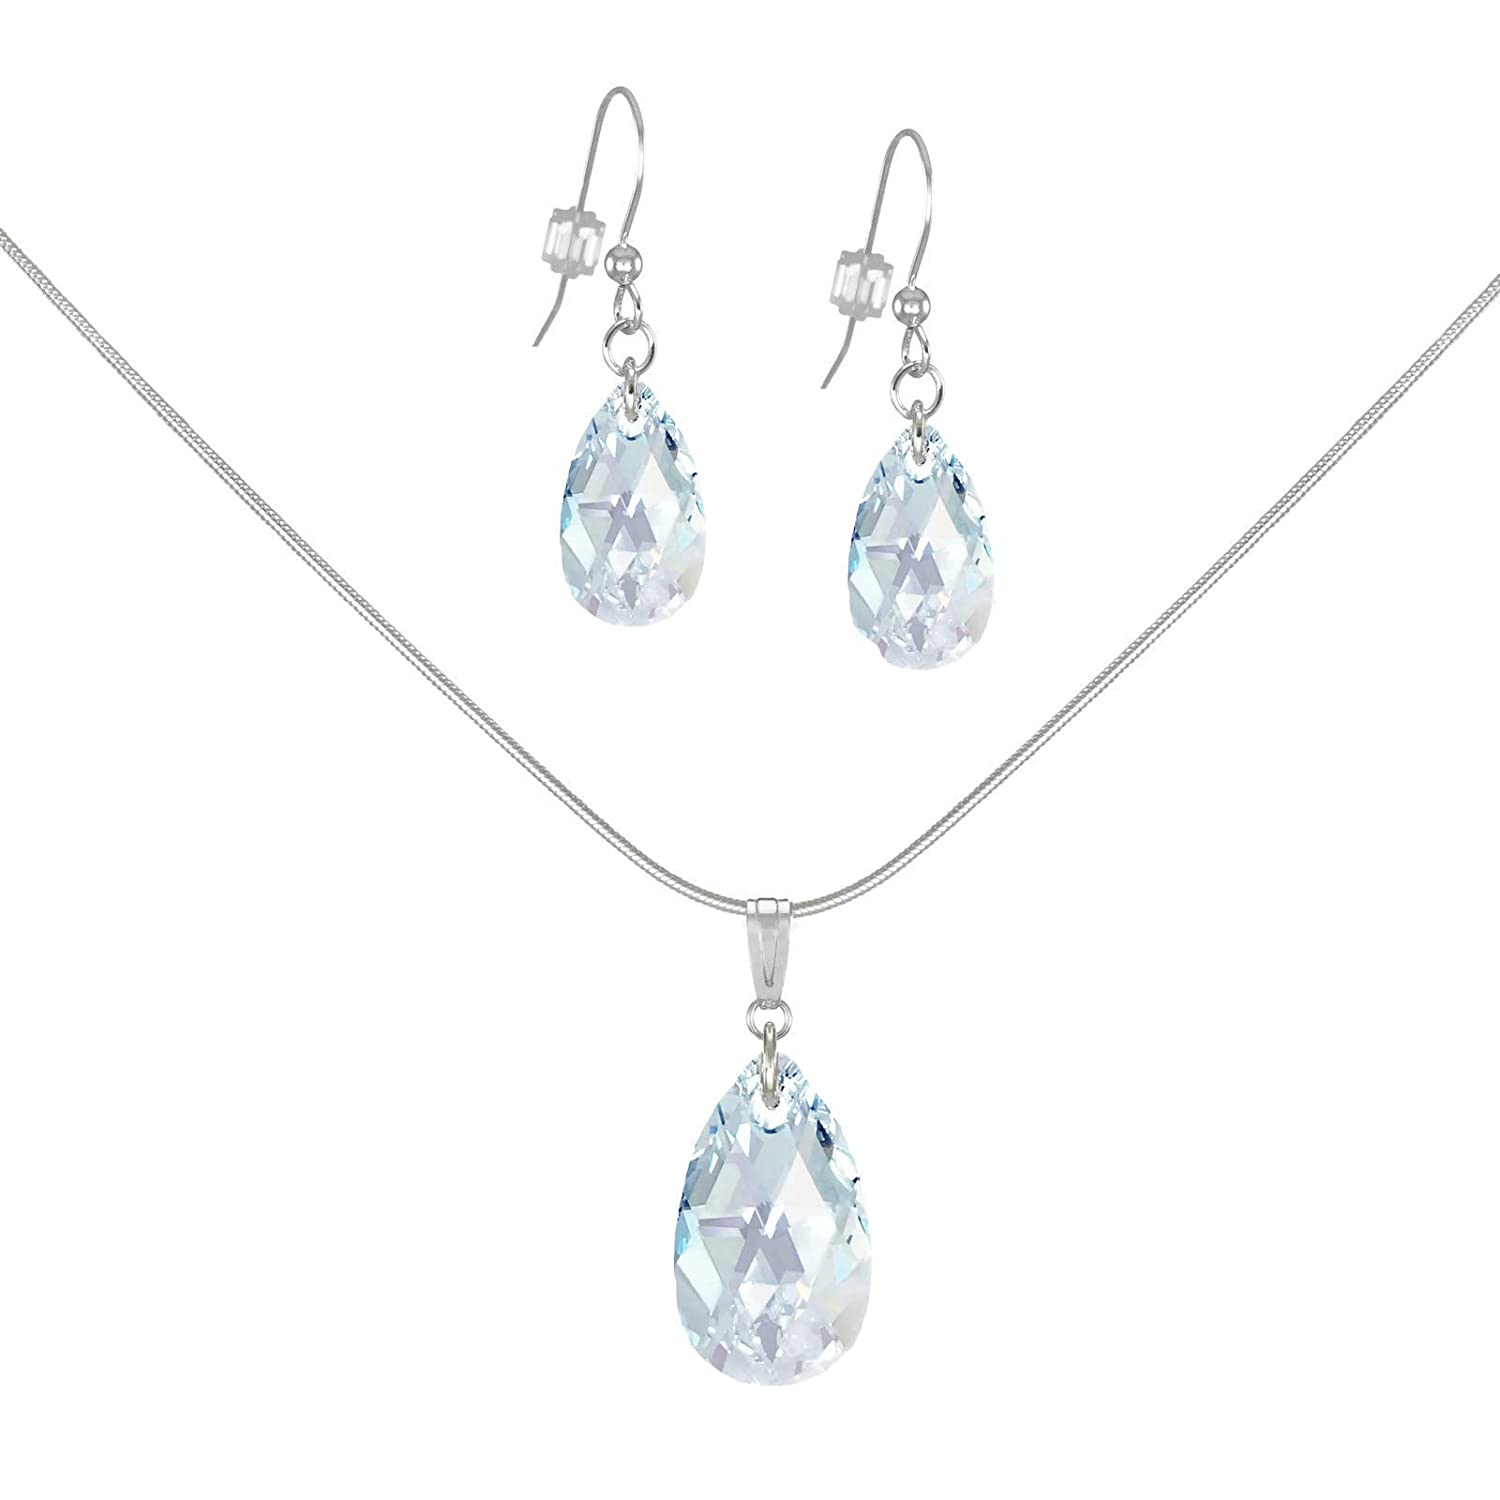 *SALE* Fast-and-Free-Shipping - Swarovski Crystal Light Blue Aurora Borealis Teardrop Sterling Silver Necklace and Earring Set